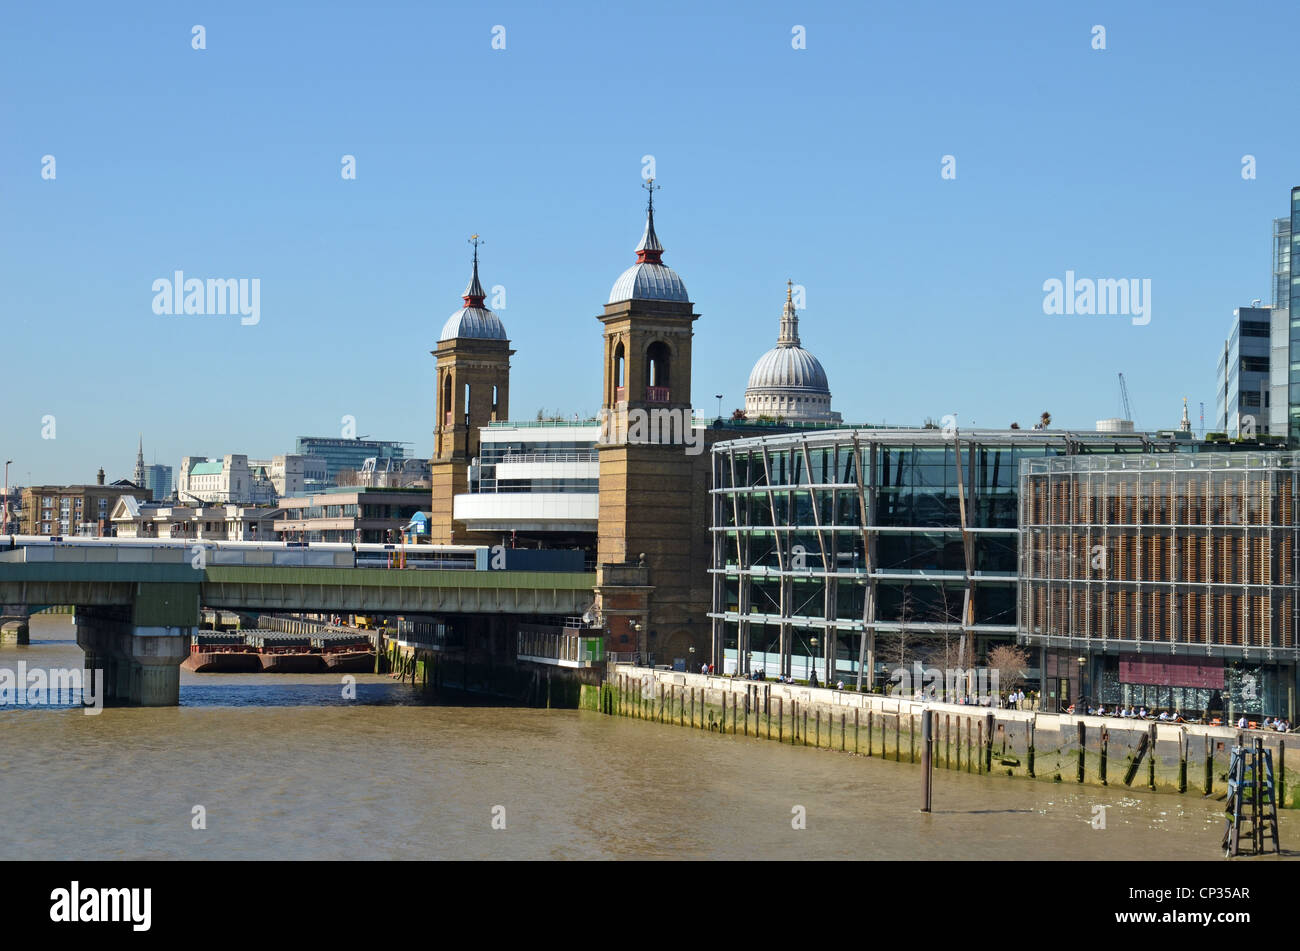 Cannon Street Station, London - Stock Image